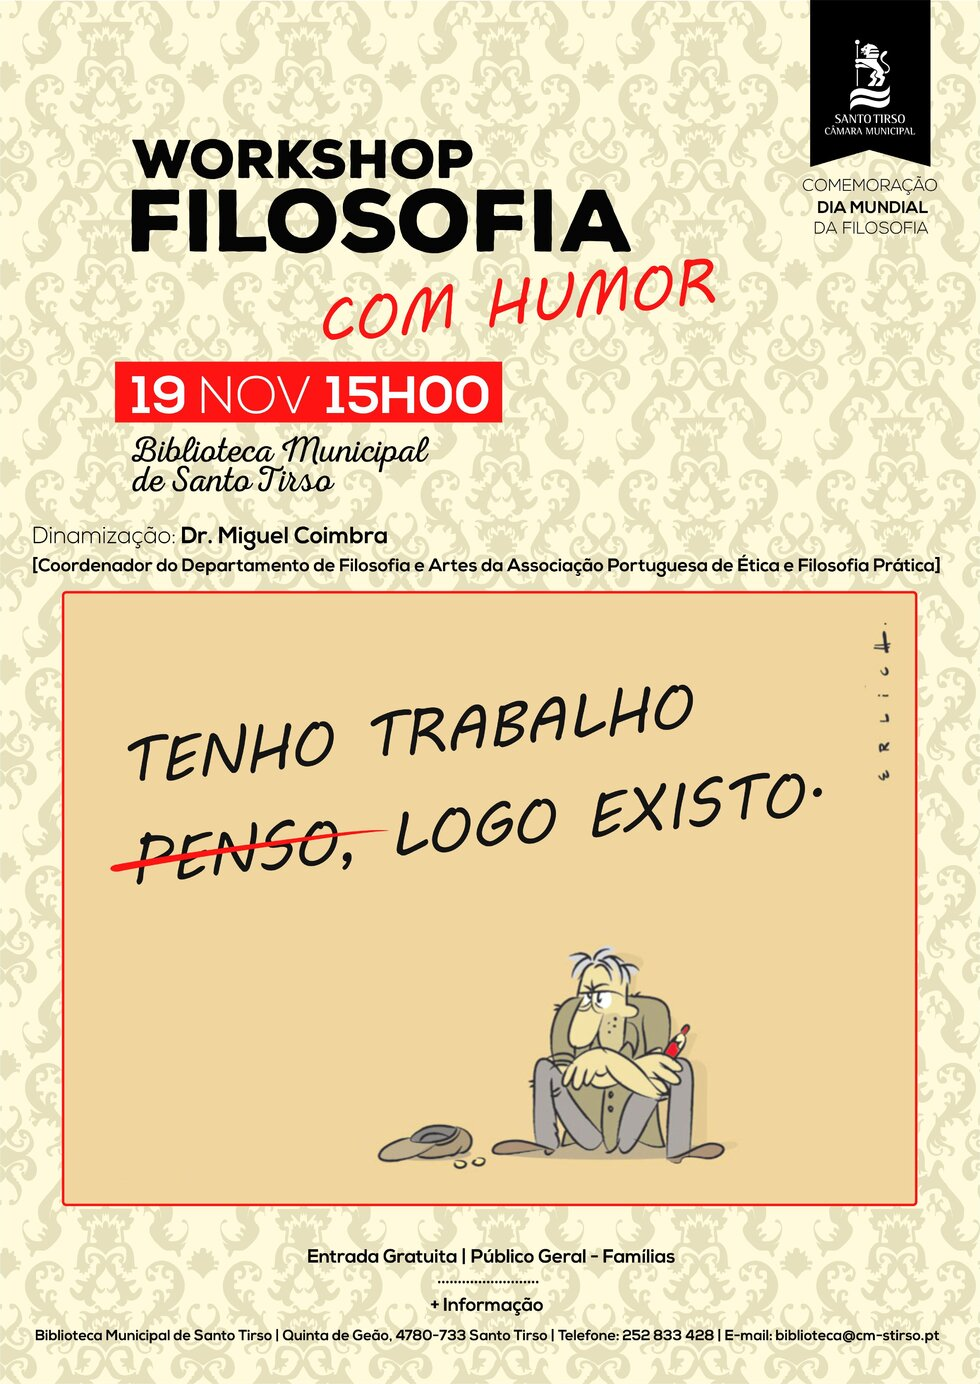 Cmst cartaz workshop filosofia 1 980 2500